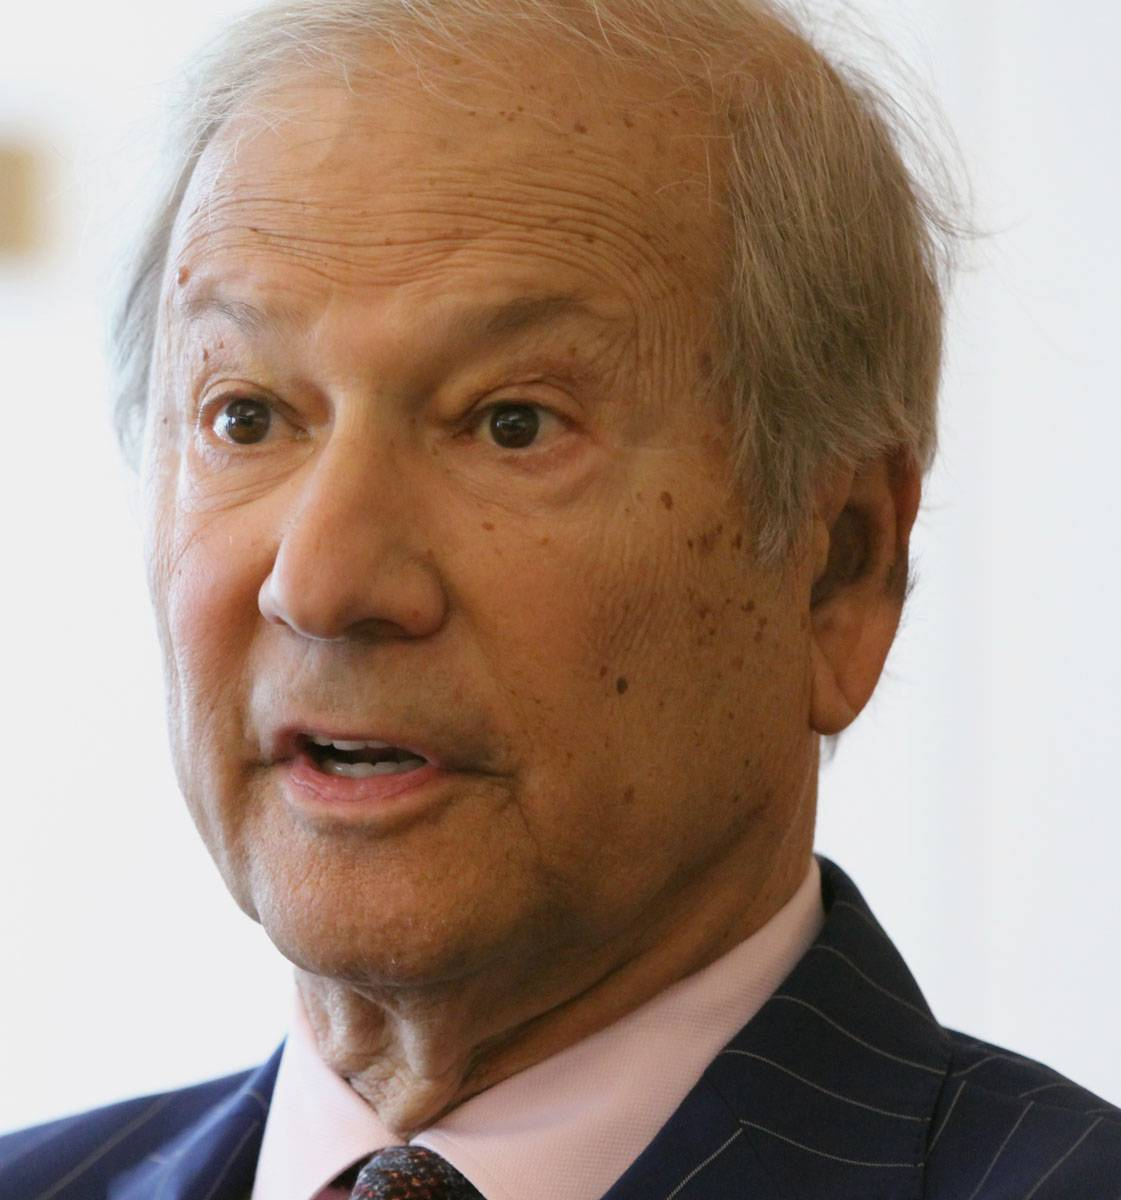 Lewis Katz, a self-made man who built his fortune in New York parking lots, billboards and cable TV, and went on to buy the NBA's New Jersey Nets, NHL's New Jersey Devils and The Philadelphia Inquirer, died in a weekend plane crash. He was 72.